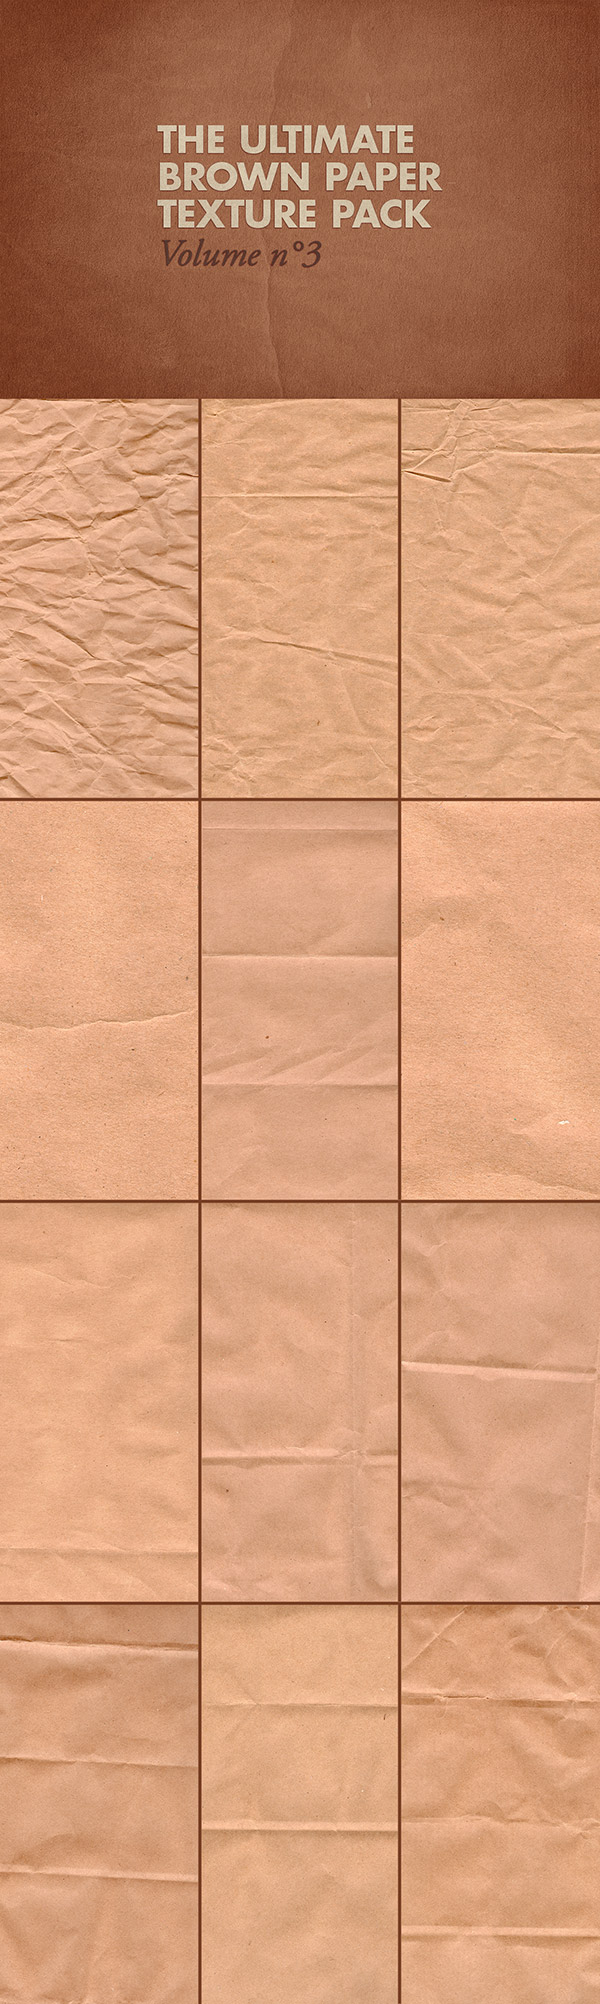 The Ultimate Brown Paper Texture Pack